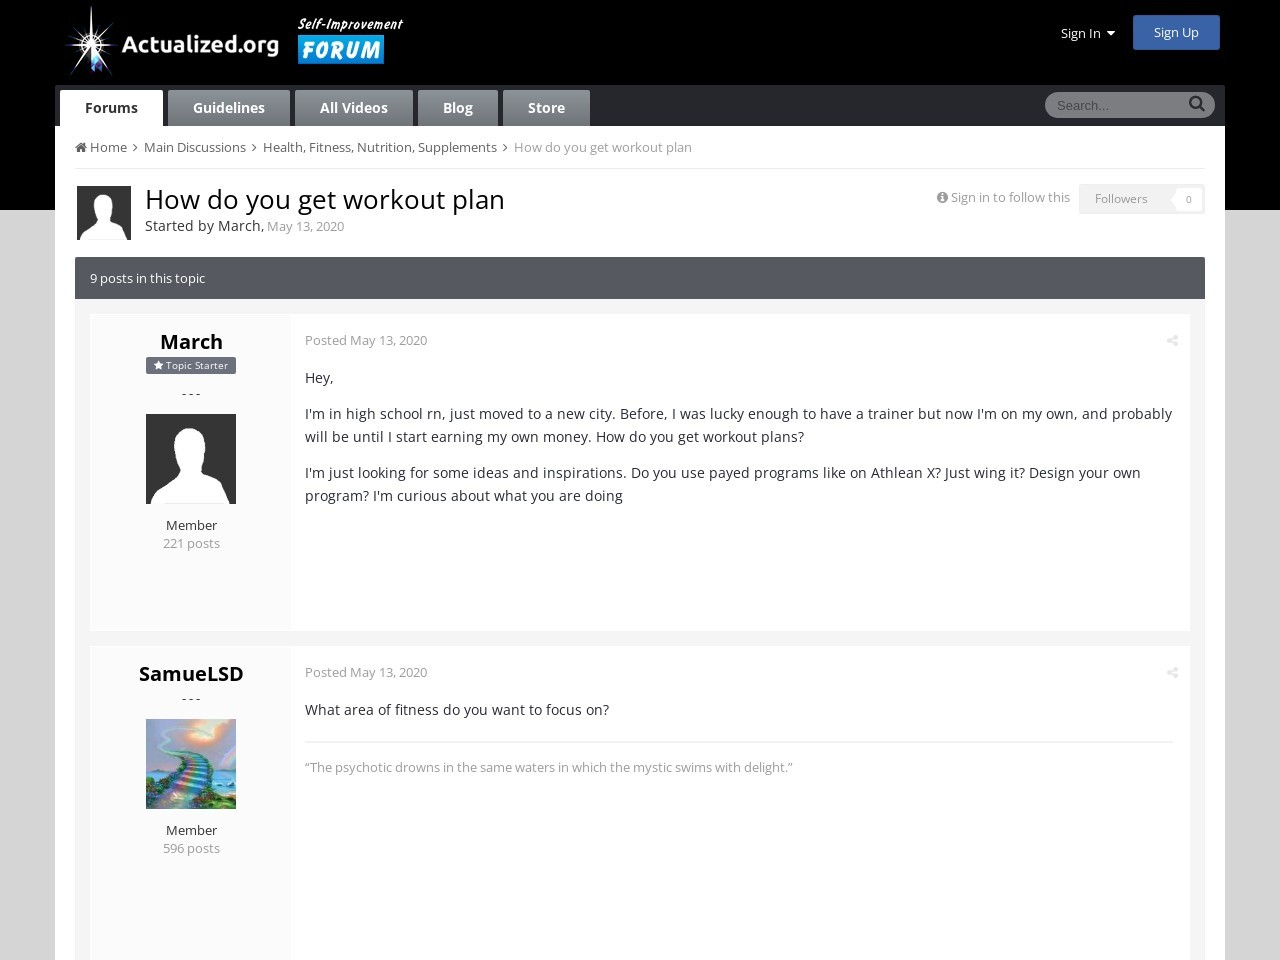 How do you get workout plan | Health, Fitness, Nutrition